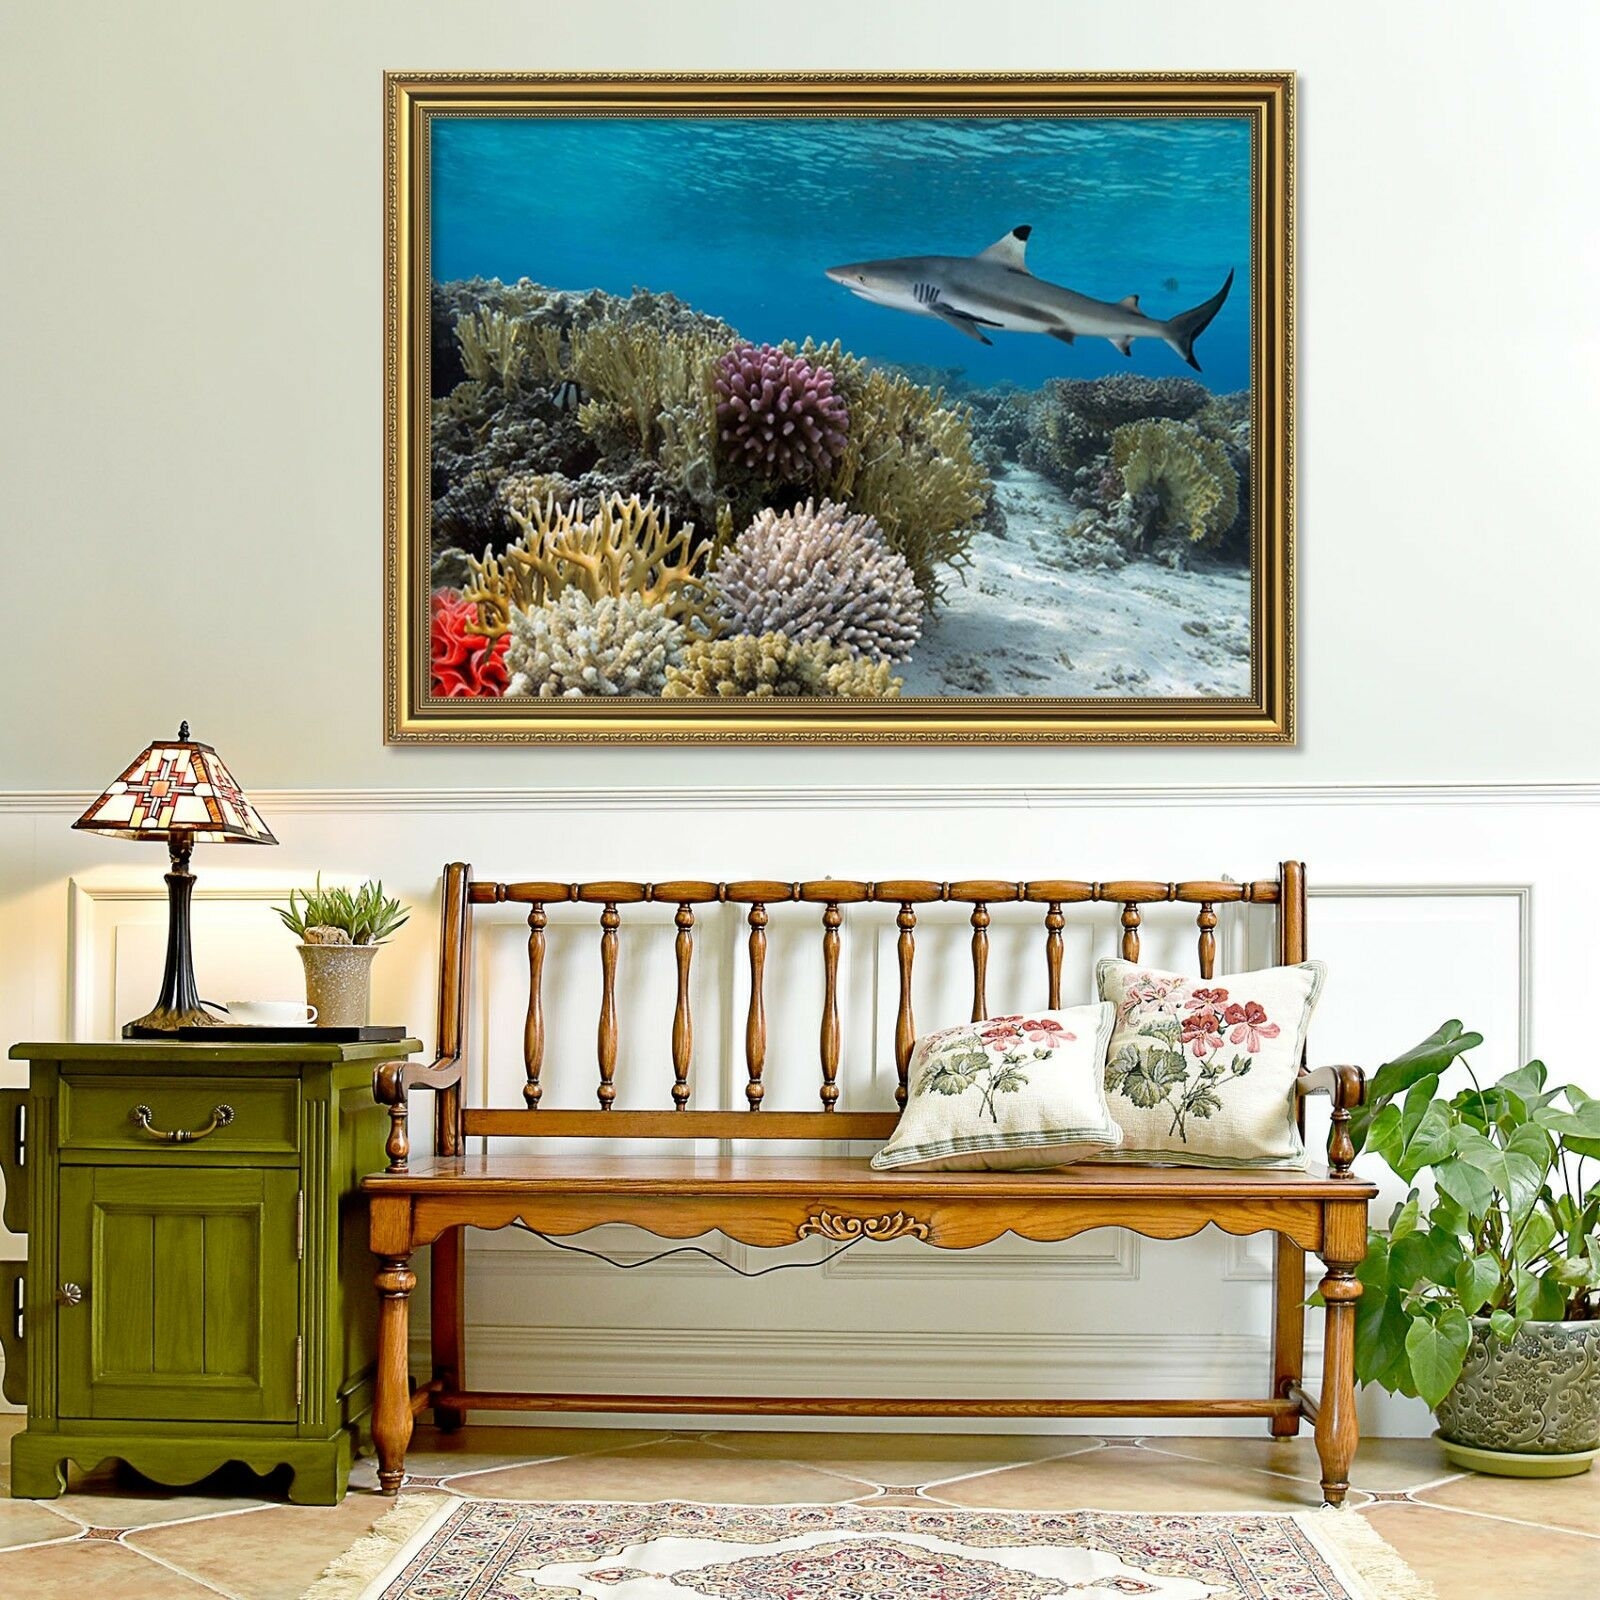 3D Shark Coral Ocean 2 Framed Poster Home Decor Print Painting Art AJ WALLPAPER